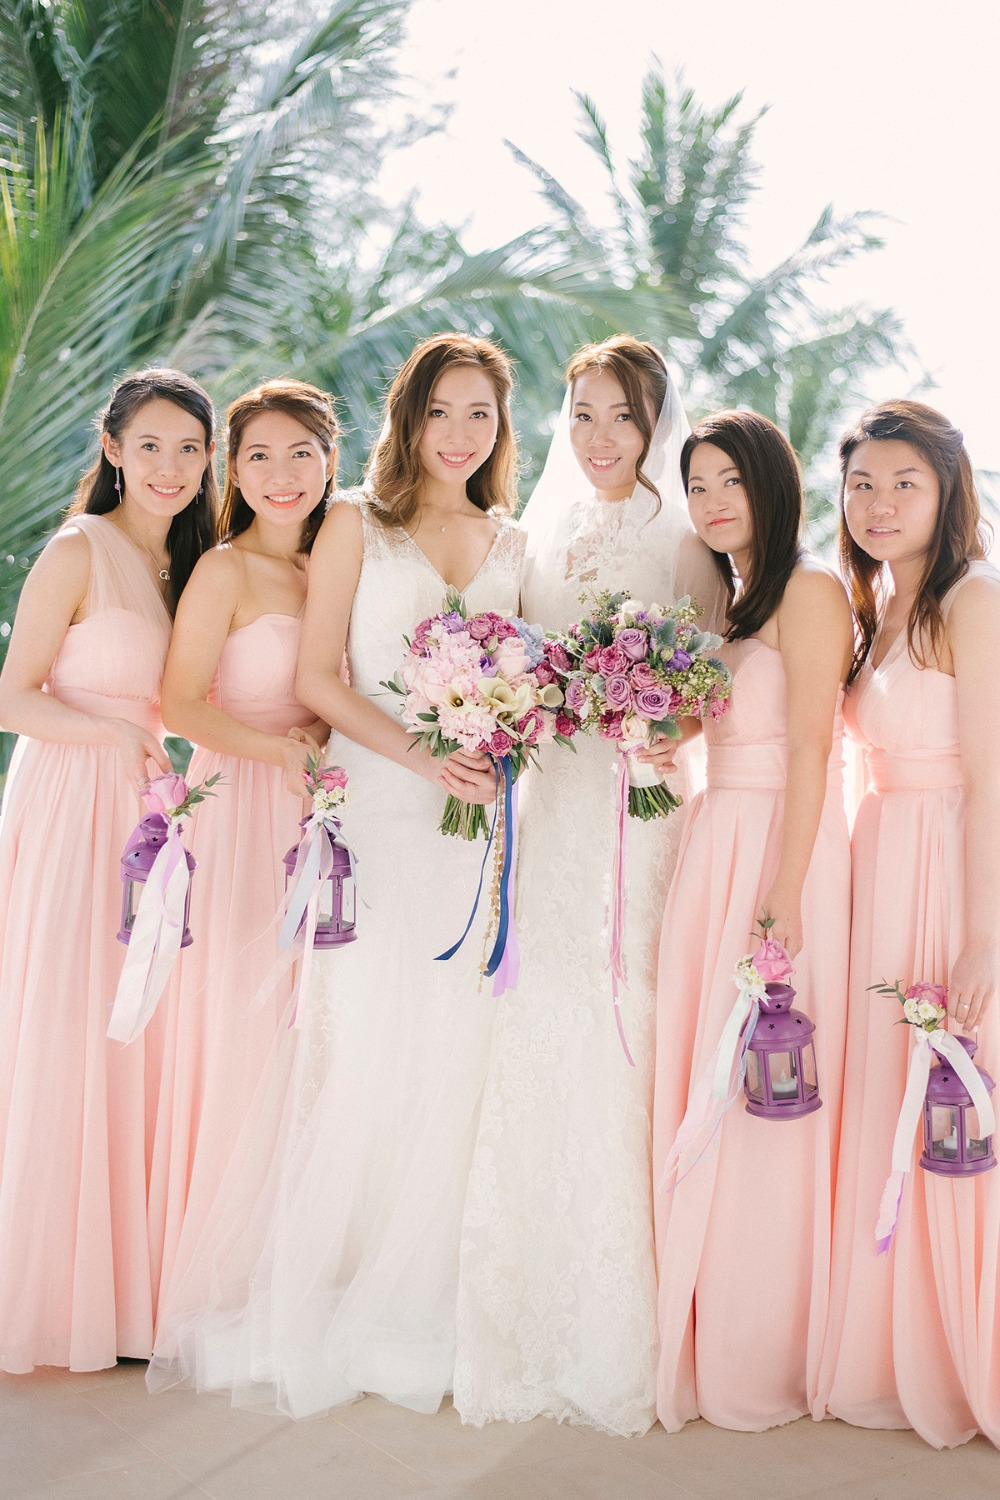 Sister duo wedding in Phuket